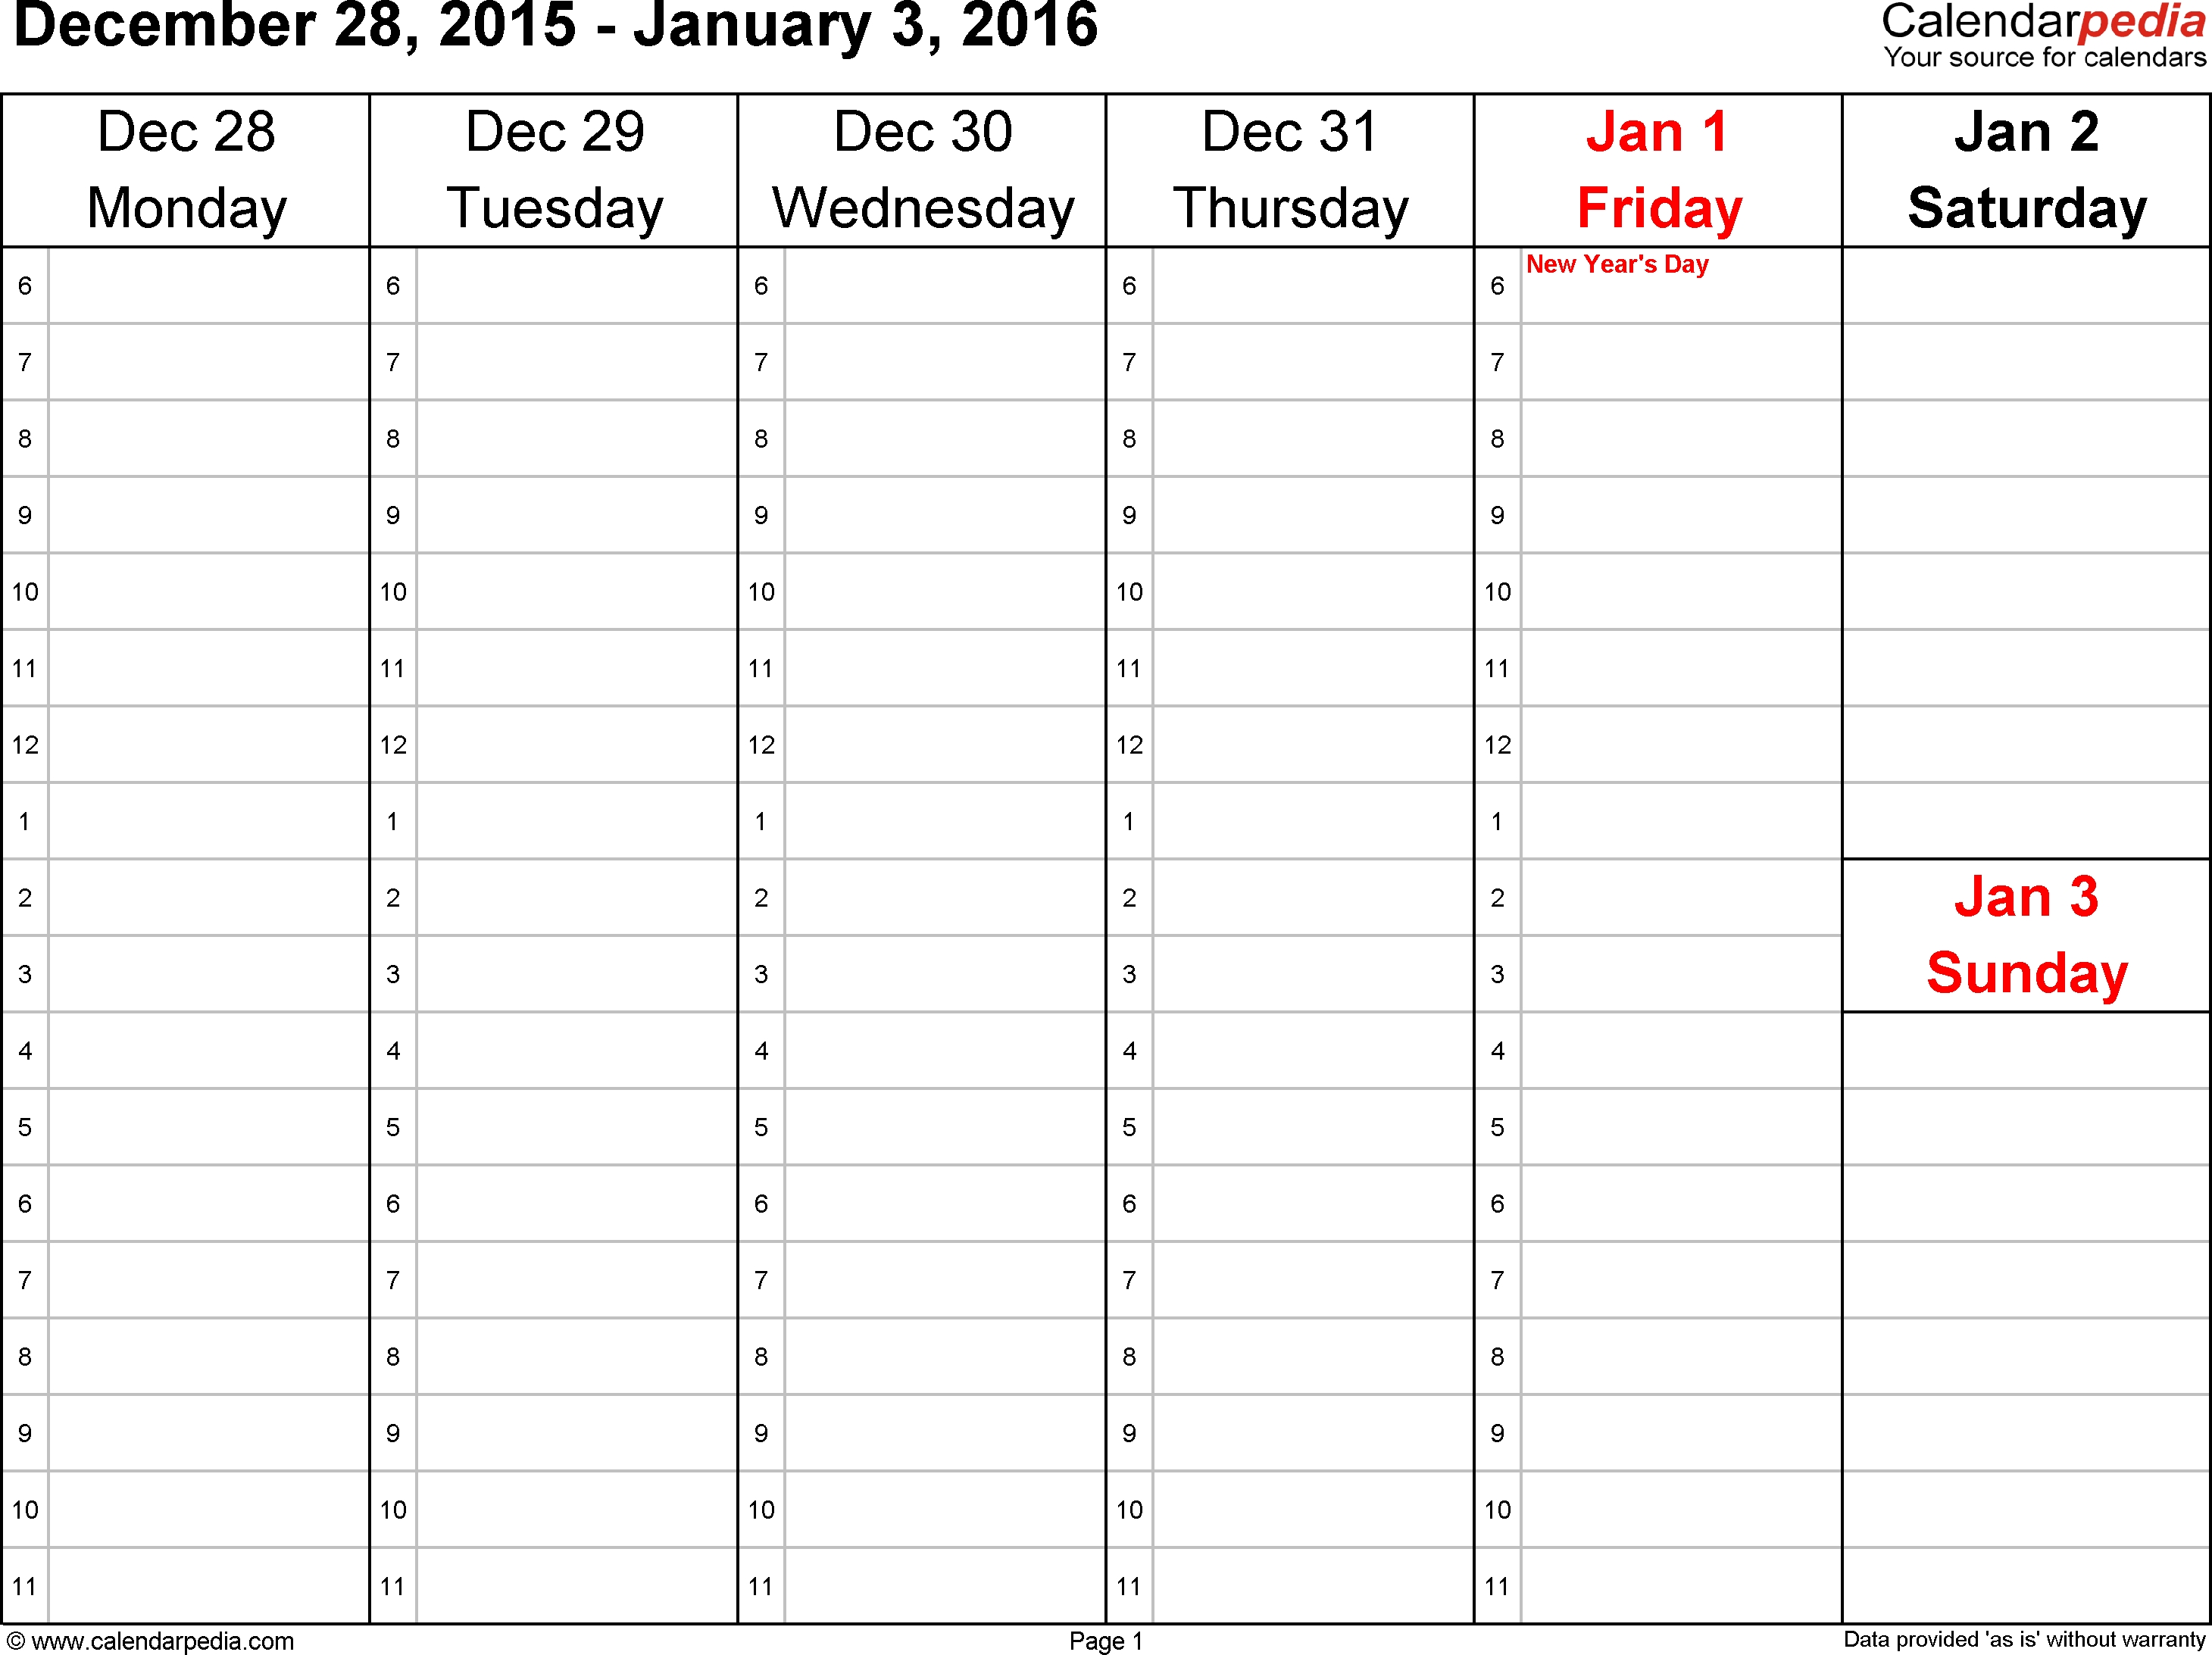 Weekly Calendar 2016 For Word - 12 Free Printable Templates  Weekly Calandar Template Starting Monday